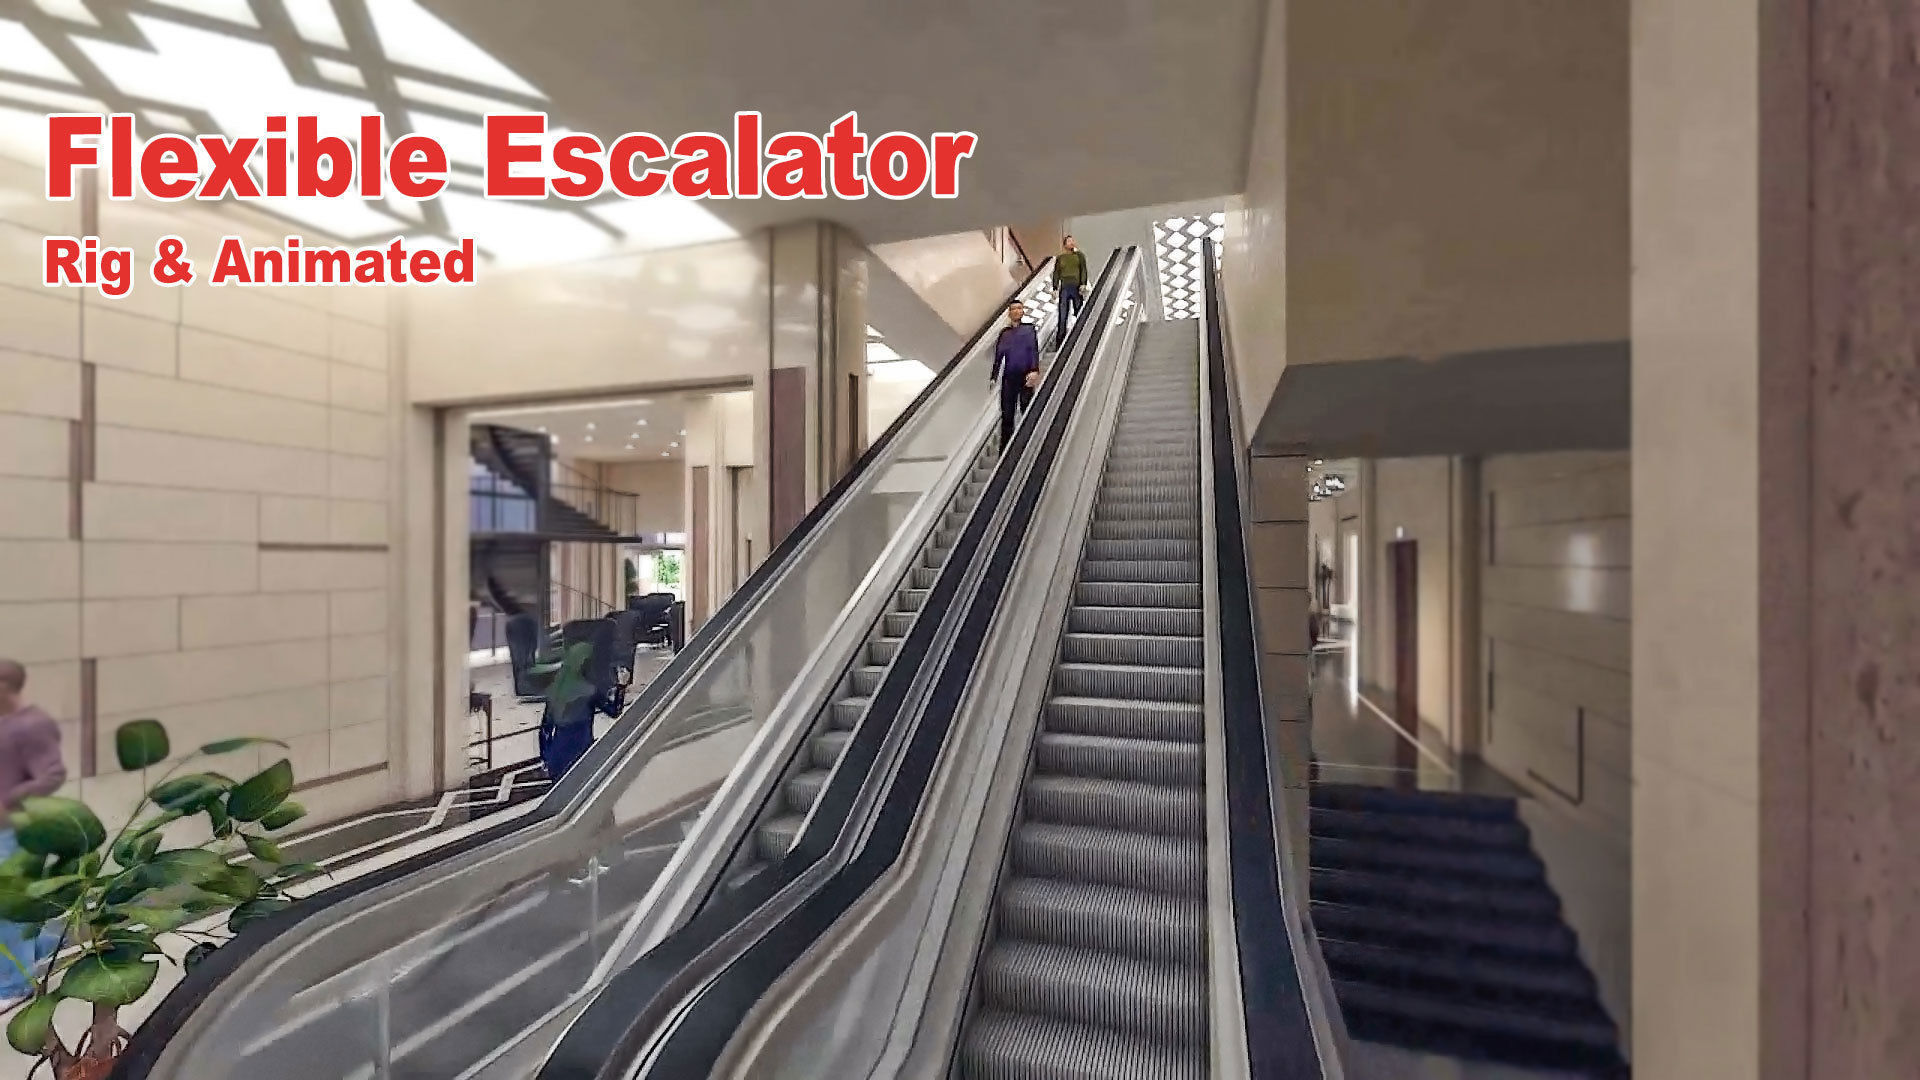 Flexible Escalator